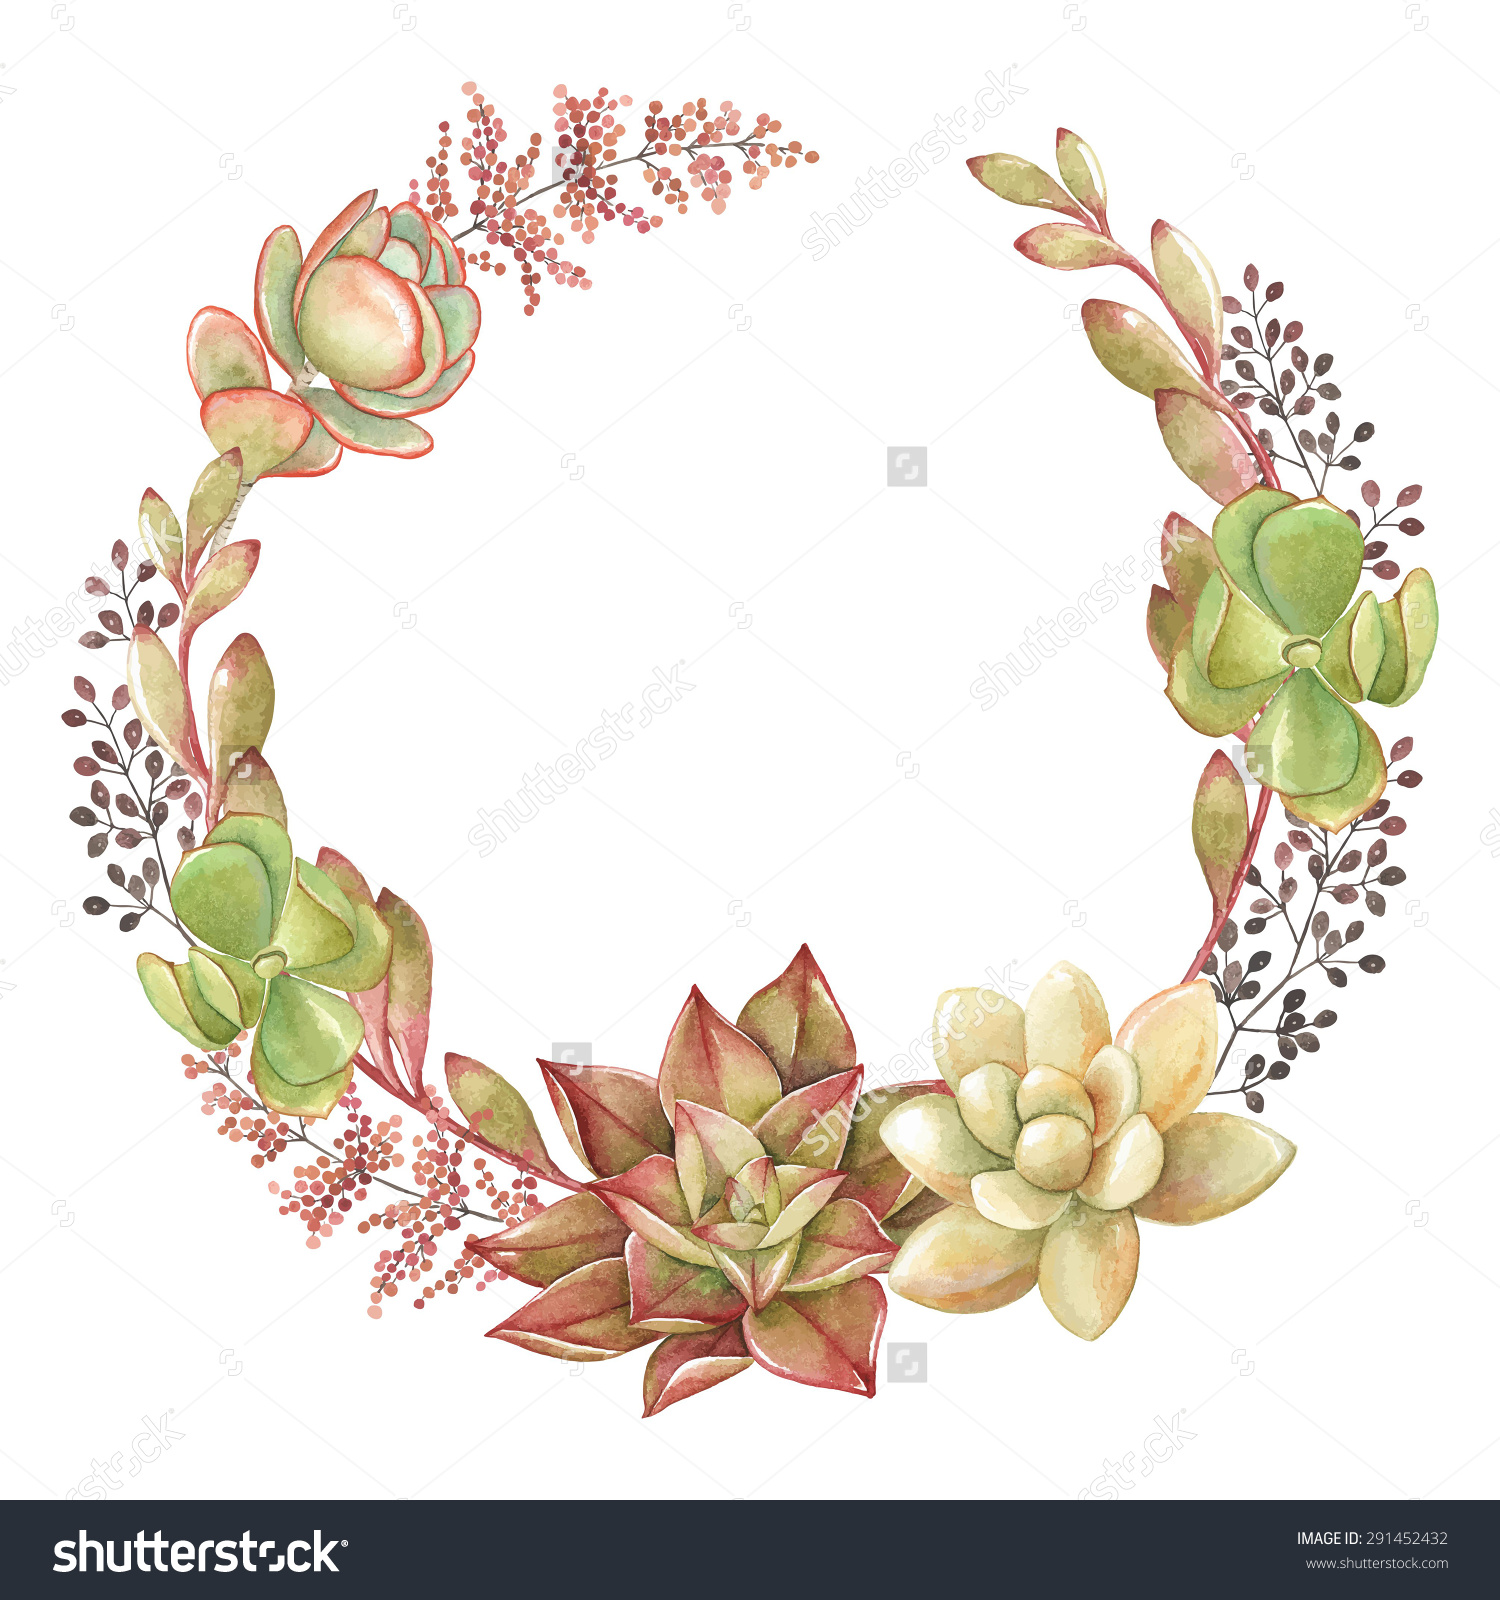 Wreath Succulents Kalanchoe Vector Watercolor Illustration Stock.